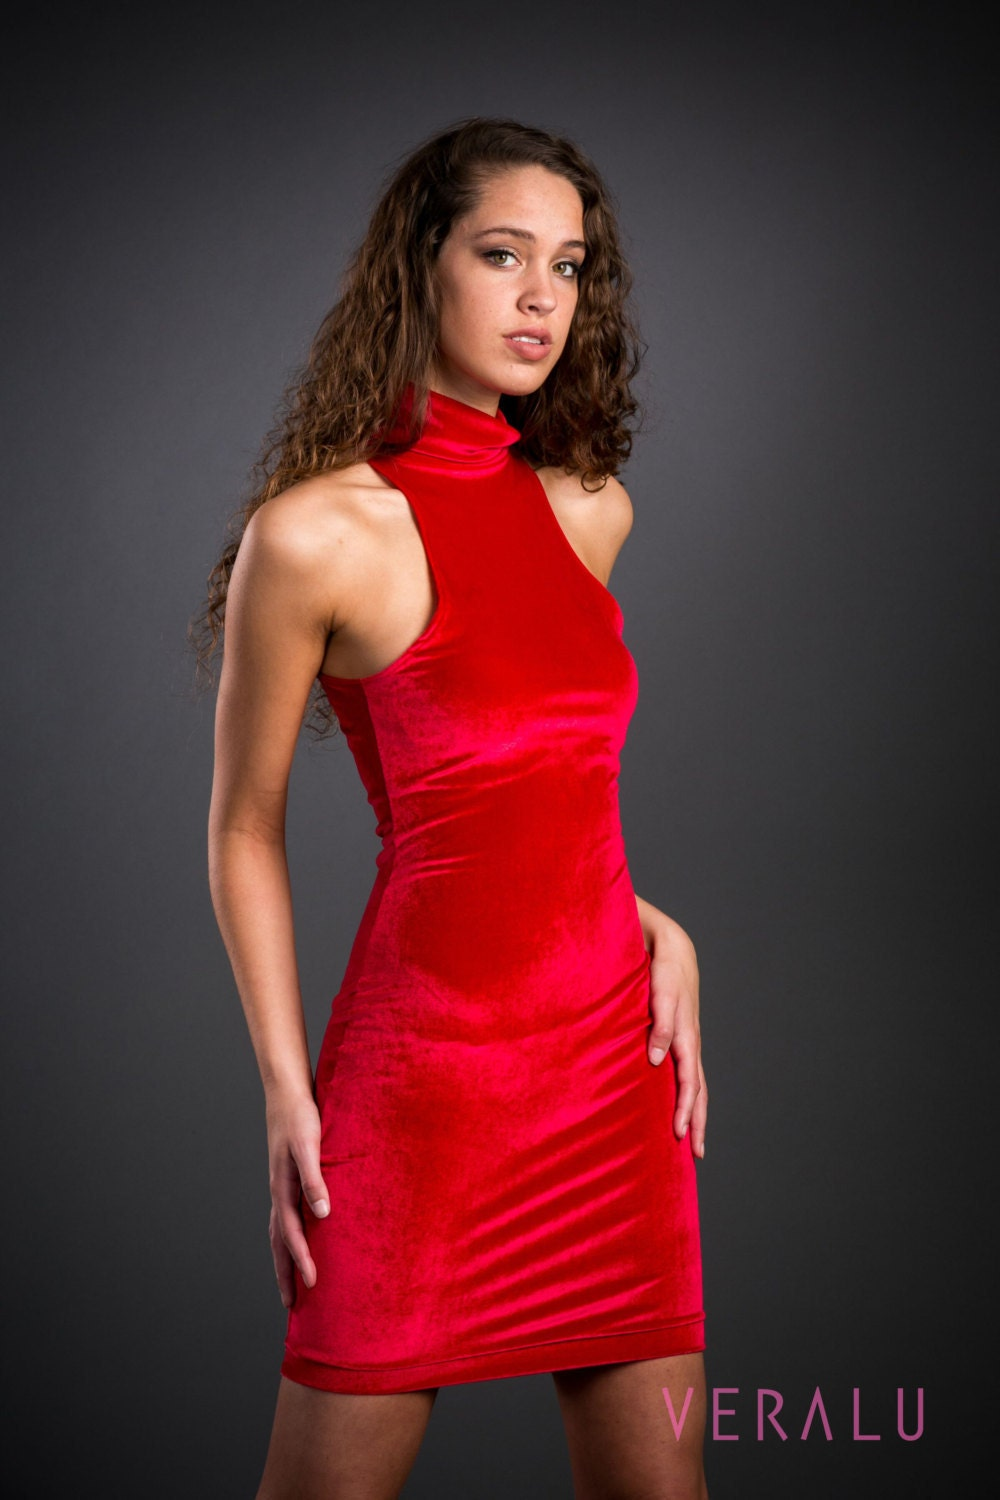 VERALU Red velvet dress